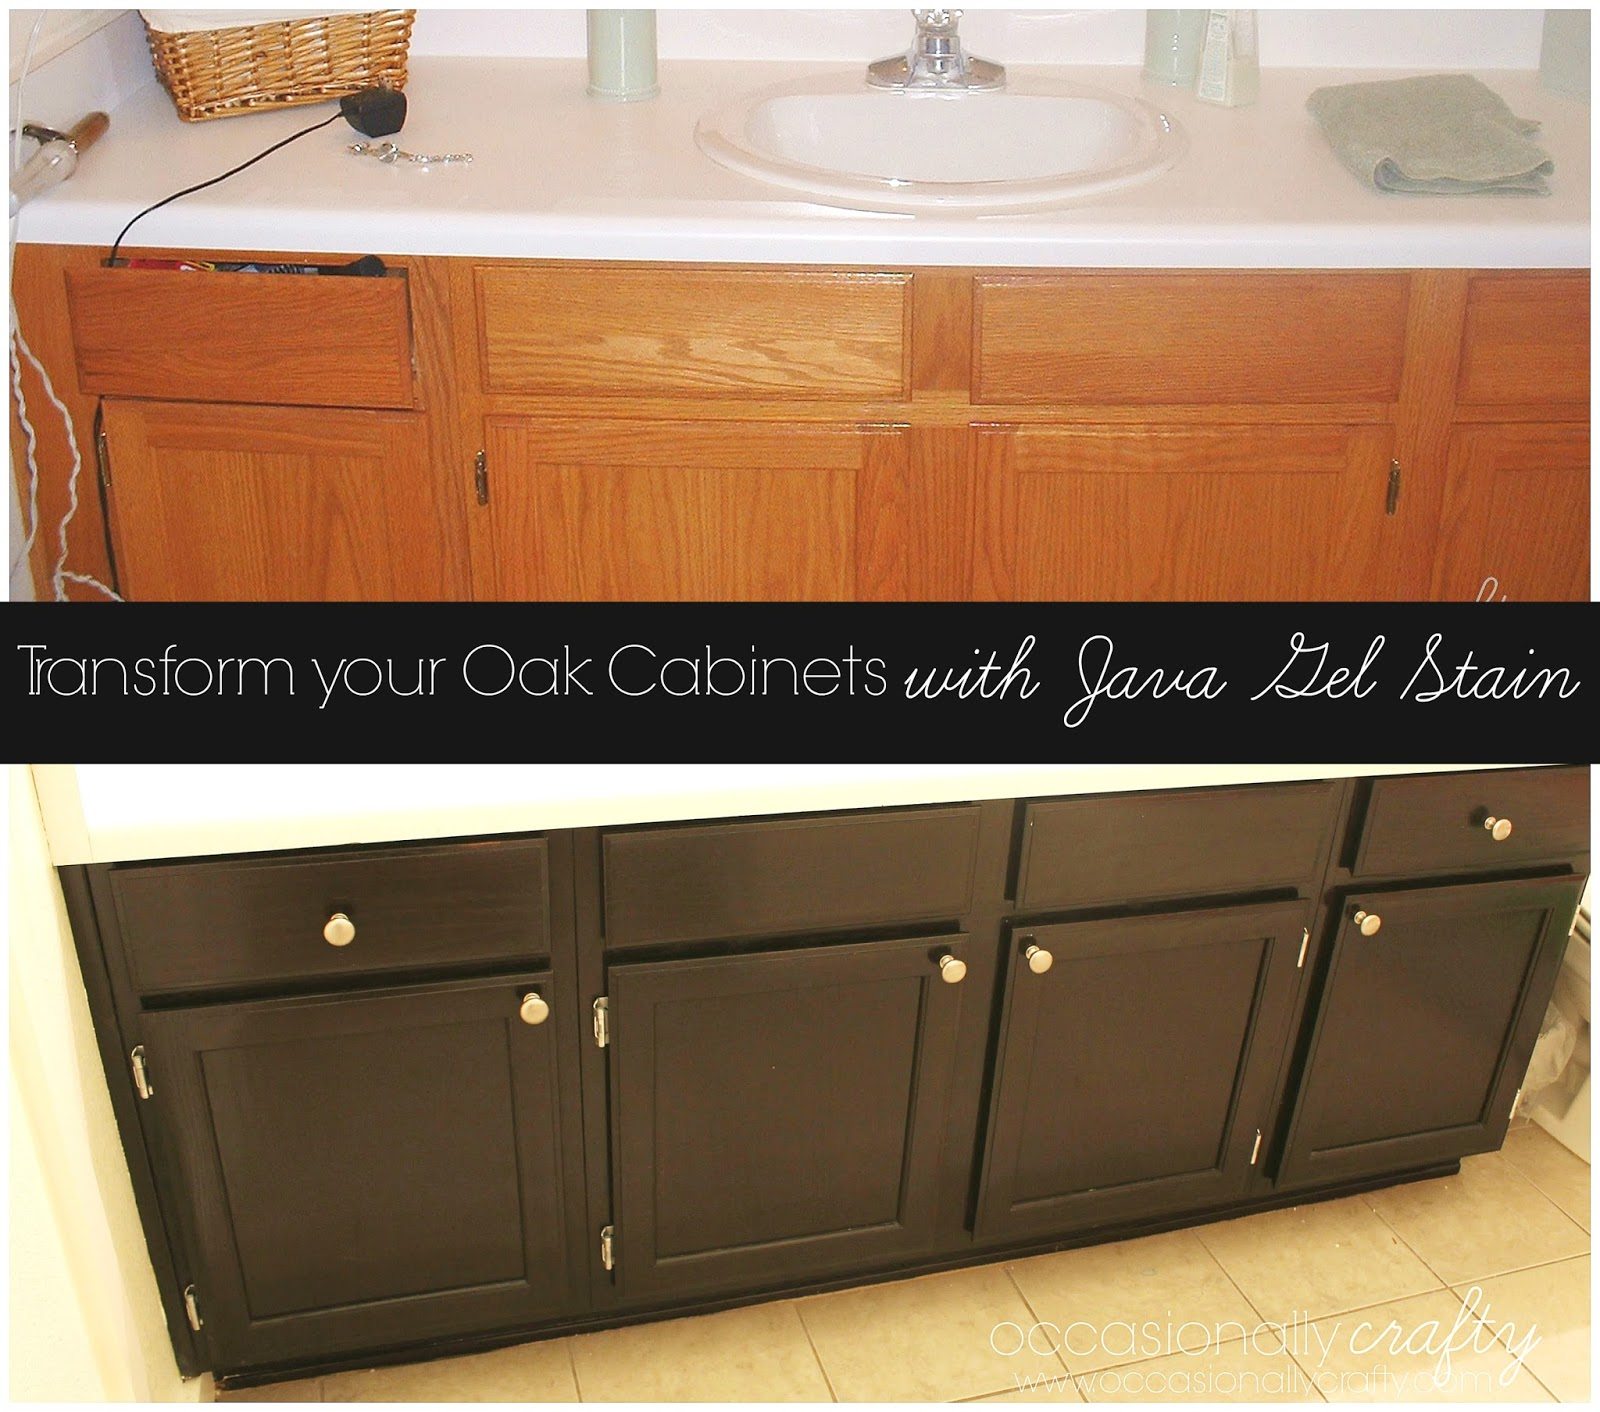 Rustoleum Kitchen Cabinets Transform Your Golden Oak Cabinets With Java Gel Stain